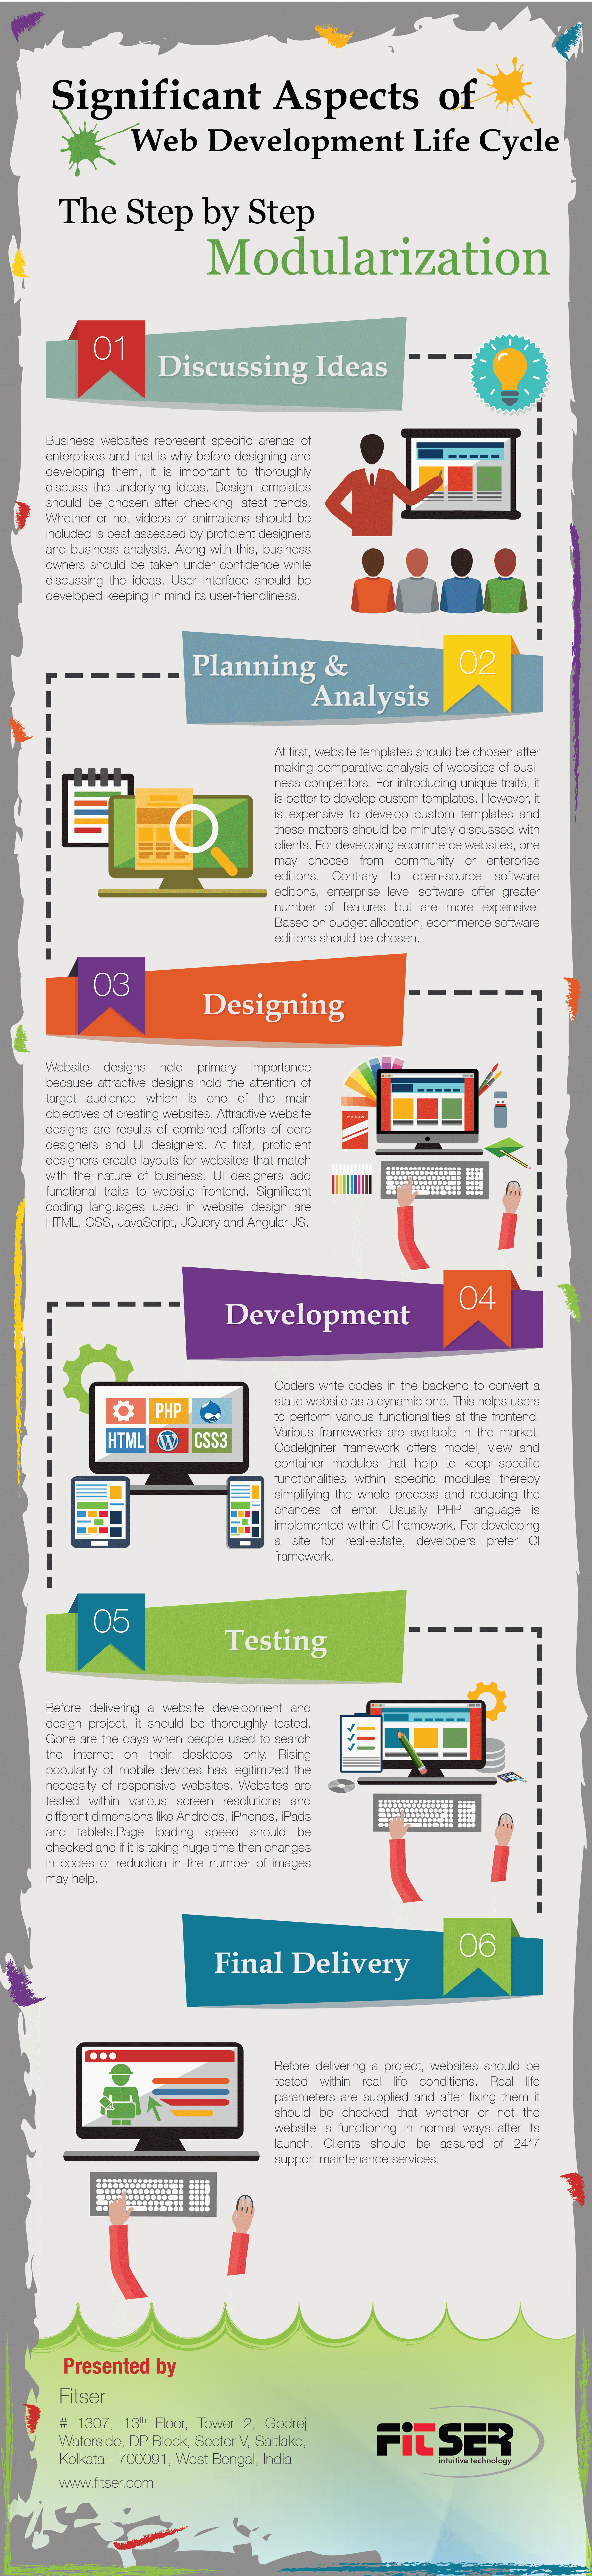 Web Development Life Cycle - Infographic